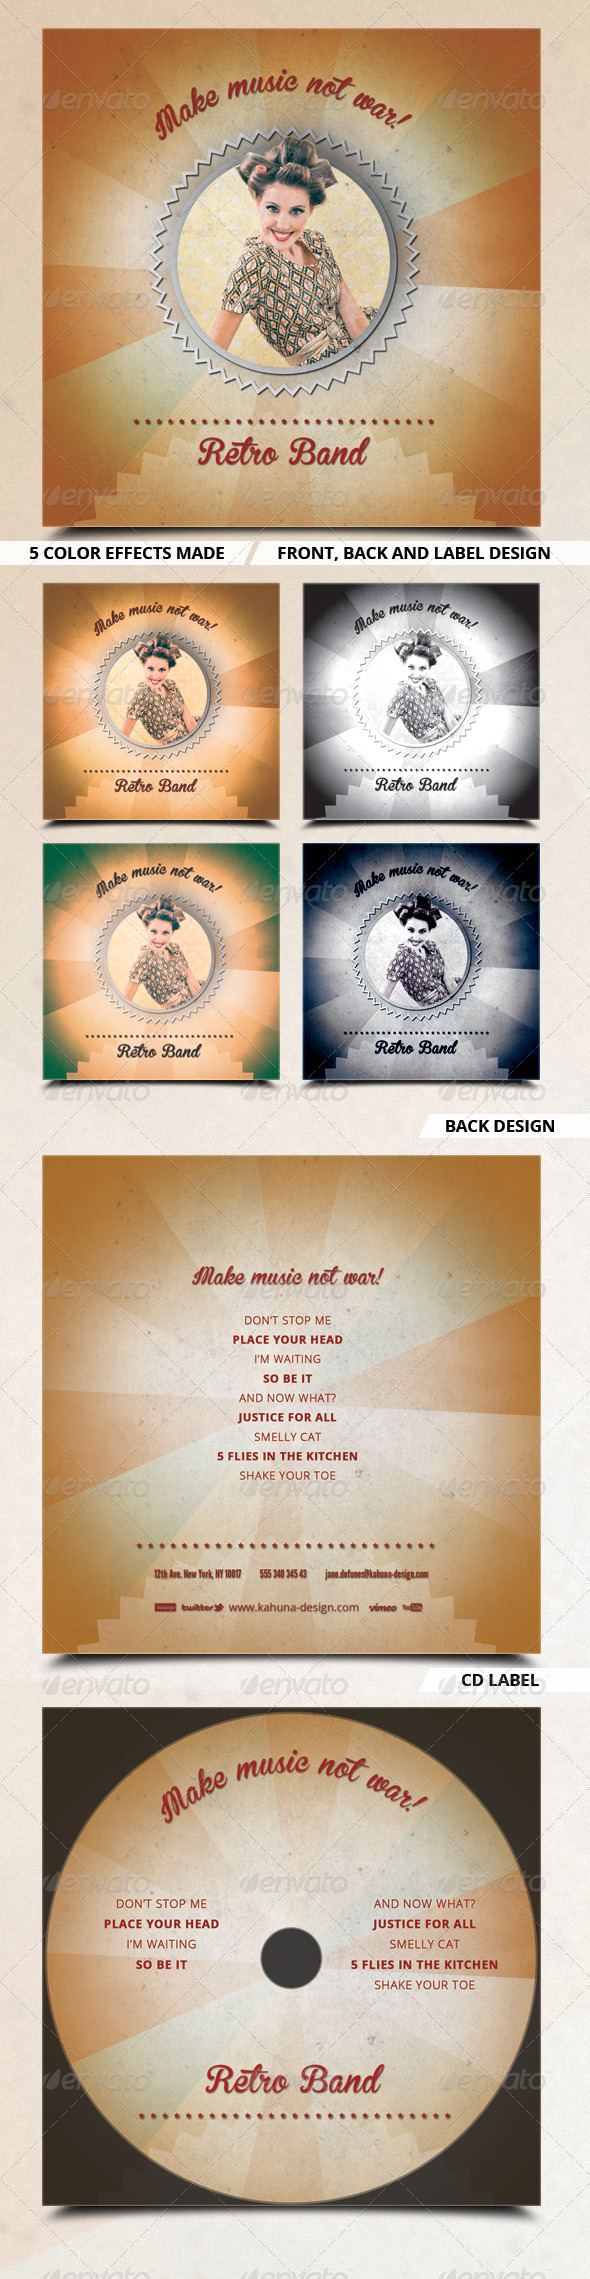 Retro Band CD Artwork - CD & DVD artwork Print Templates